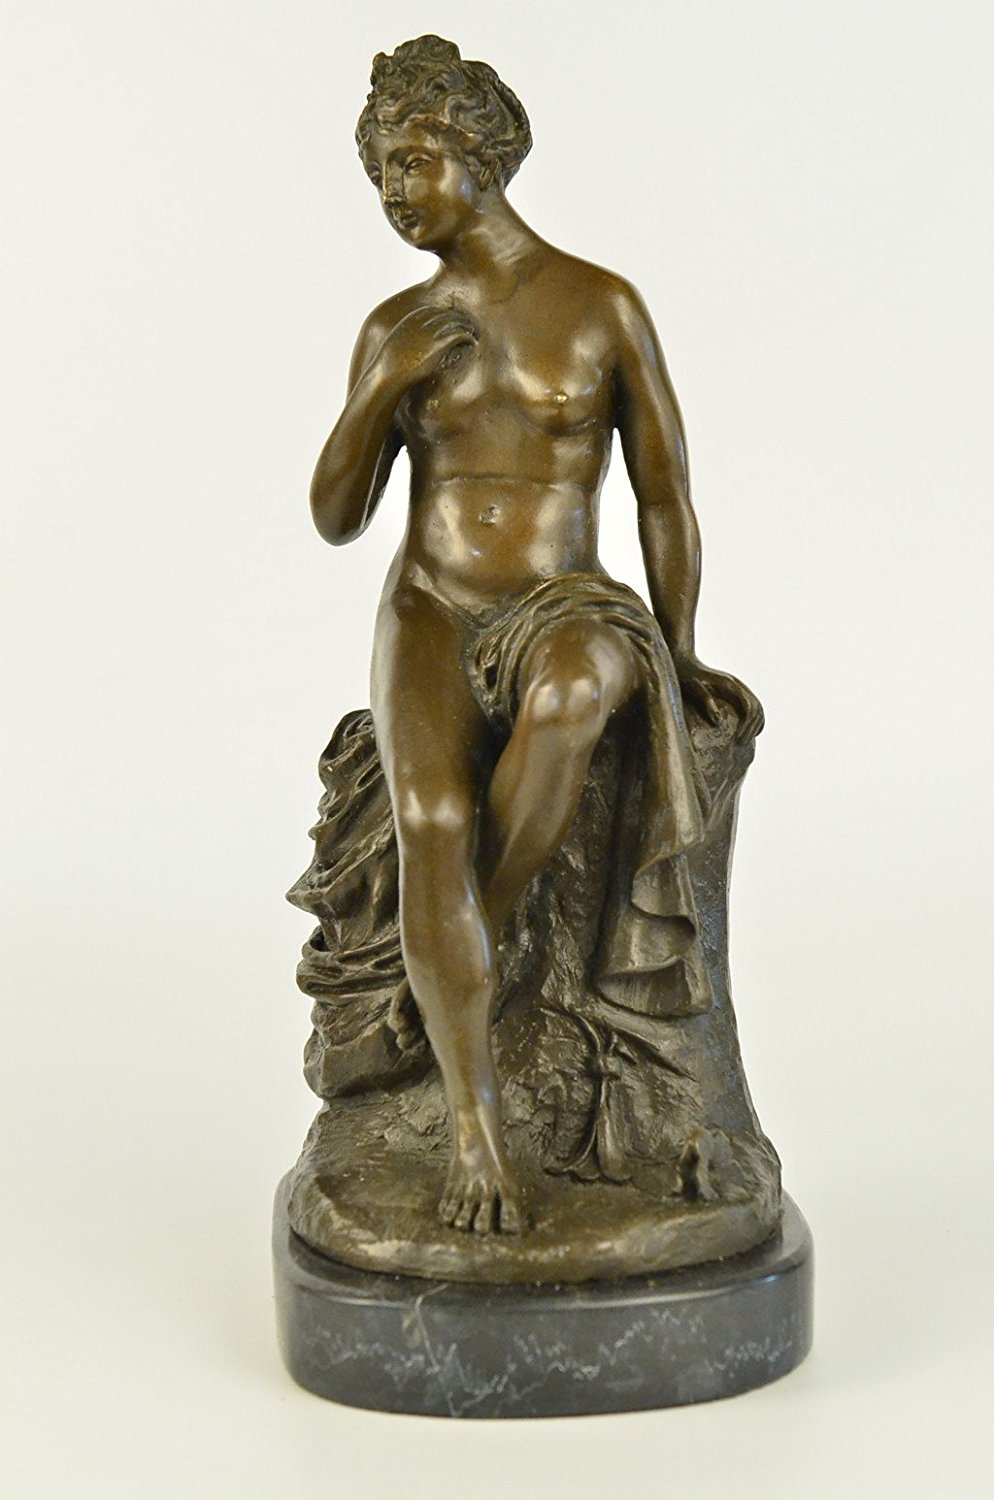 ...Handmade...European Bronze Sculpture Signed Nude Erotic Model Portrait Marble Base (1X-DS-033) Bronze Sculpture Statues Figurine Nude Office & Home Décor Collectibles Sale Deal Gifts